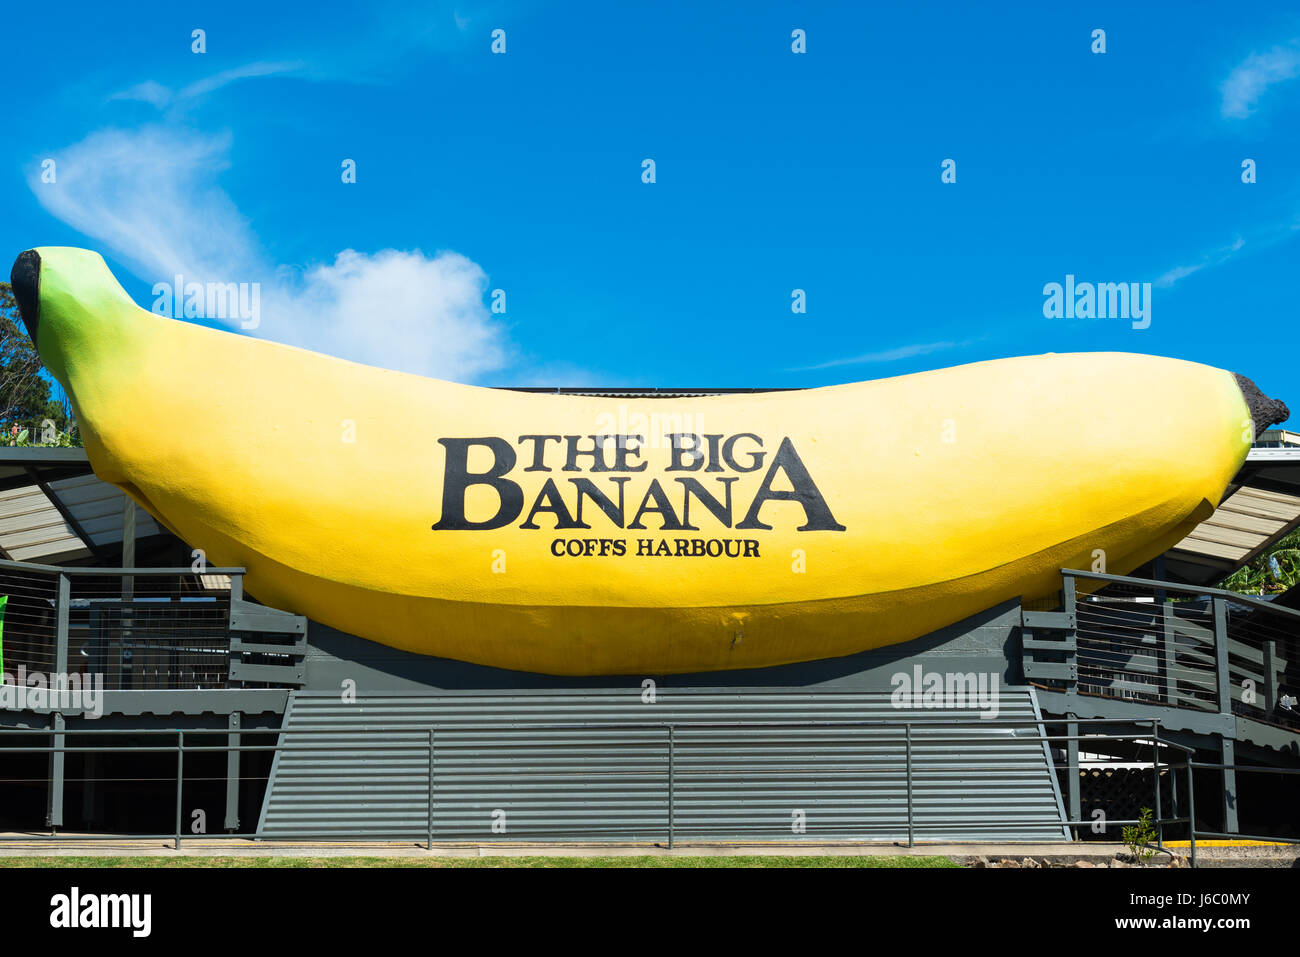 The Big Banana This giant structure located just north of Coffs Harbour on the Pacific Highway New South Wales Australia Stock Photo